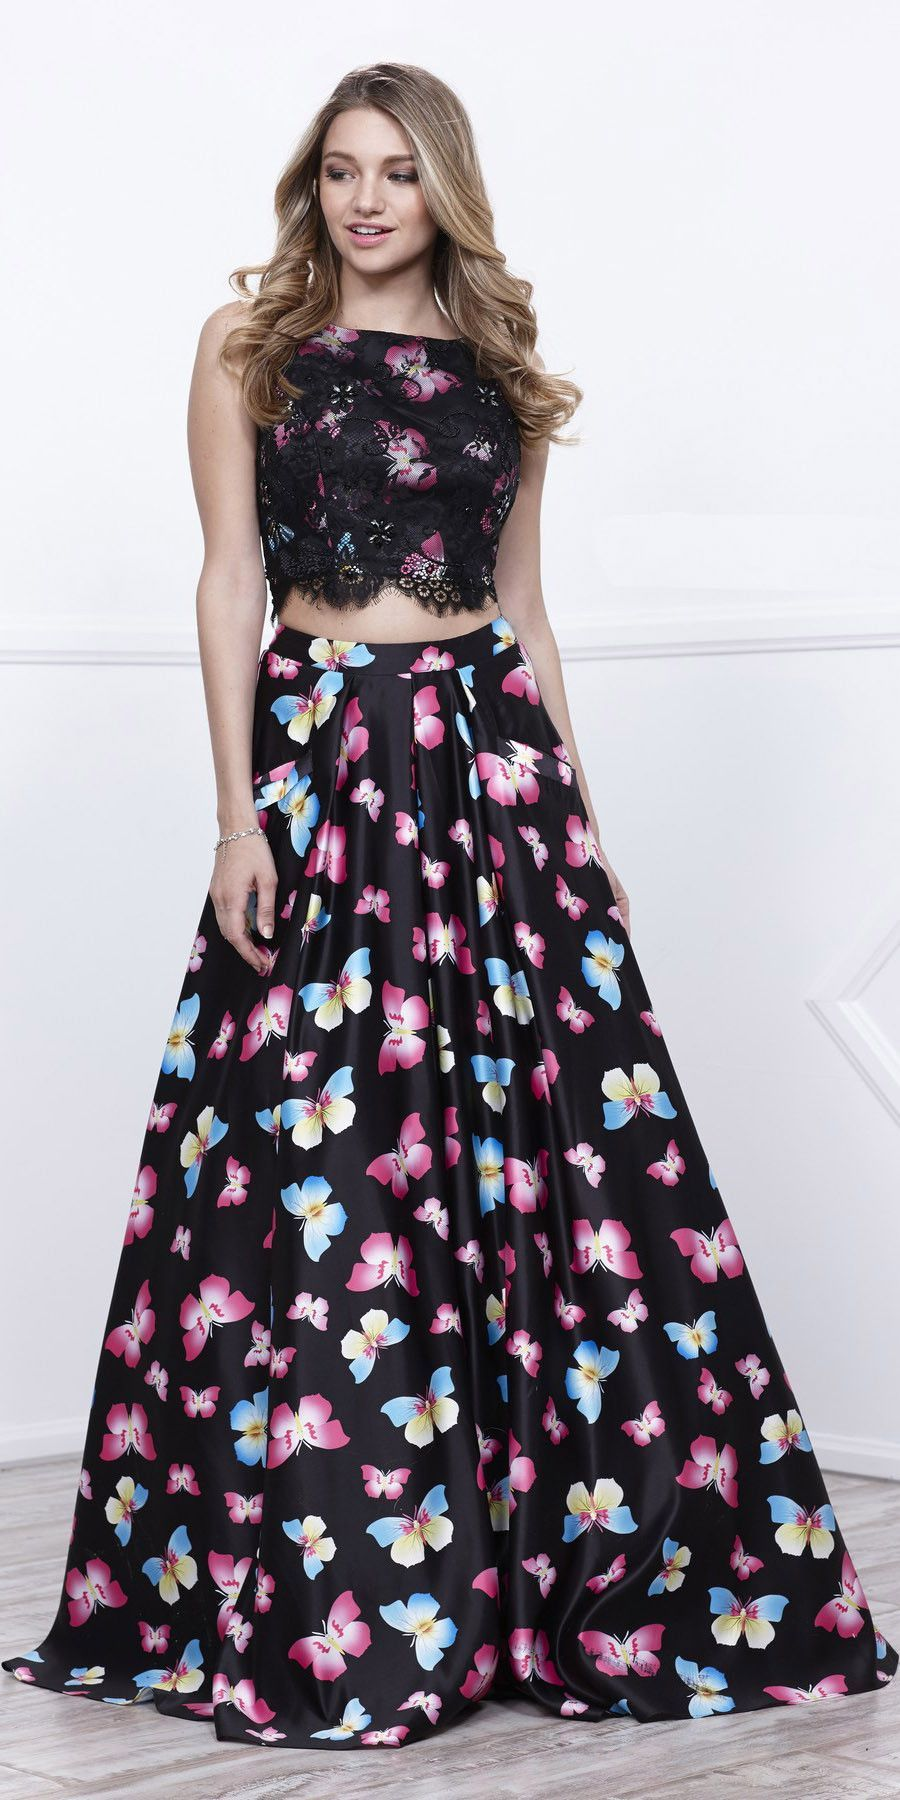 Two Piece Lace Sleeveless Black Butterfly Print Skirt Prom Gown Butterfly Print Skirt Butterfly Print Dress Prom Dresses Two Piece [ 1800 x 900 Pixel ]